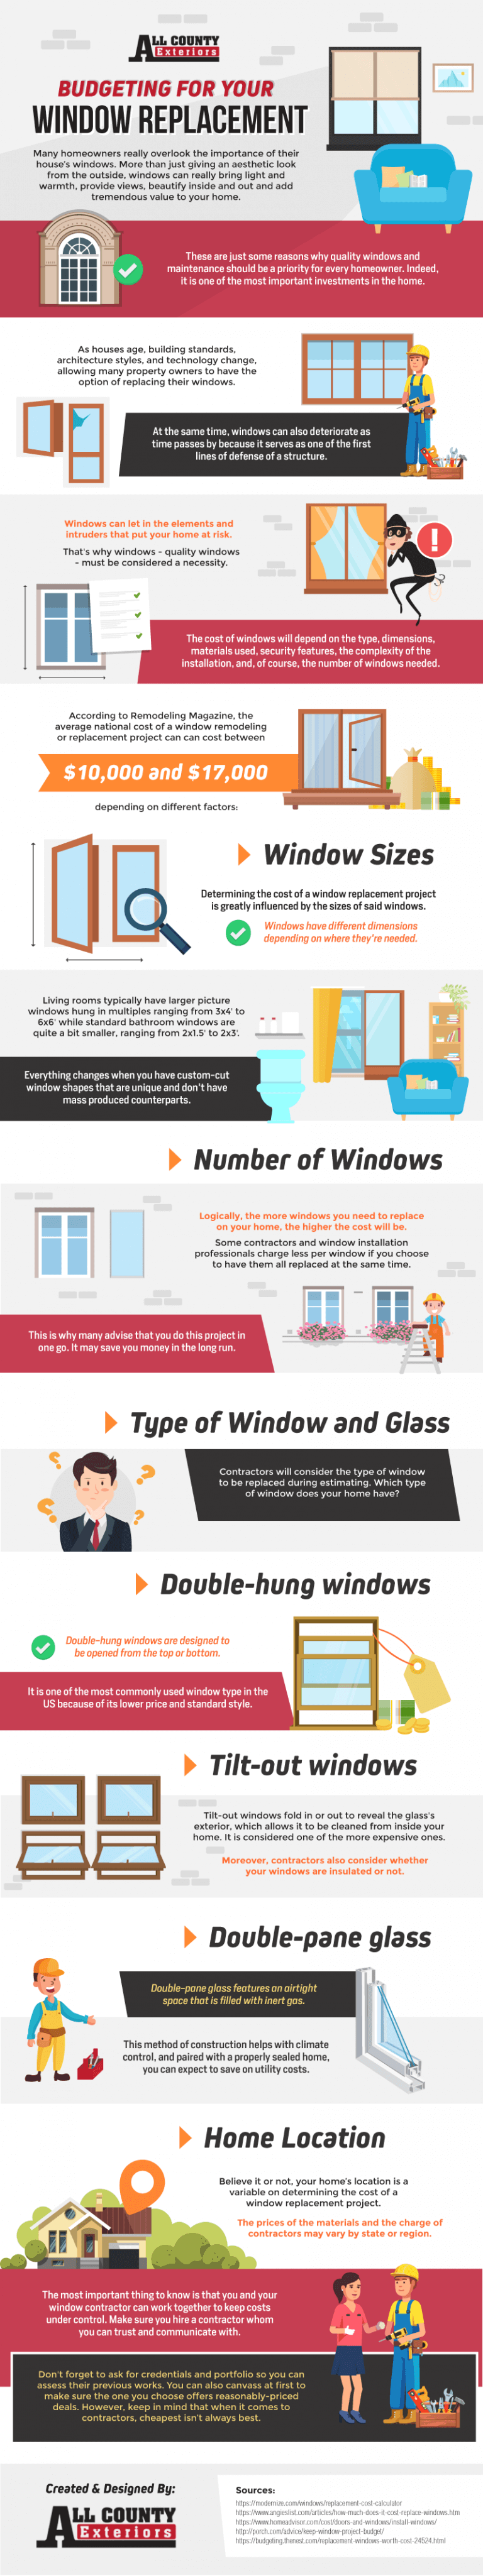 Budgeting-for-your-Window-Replacement